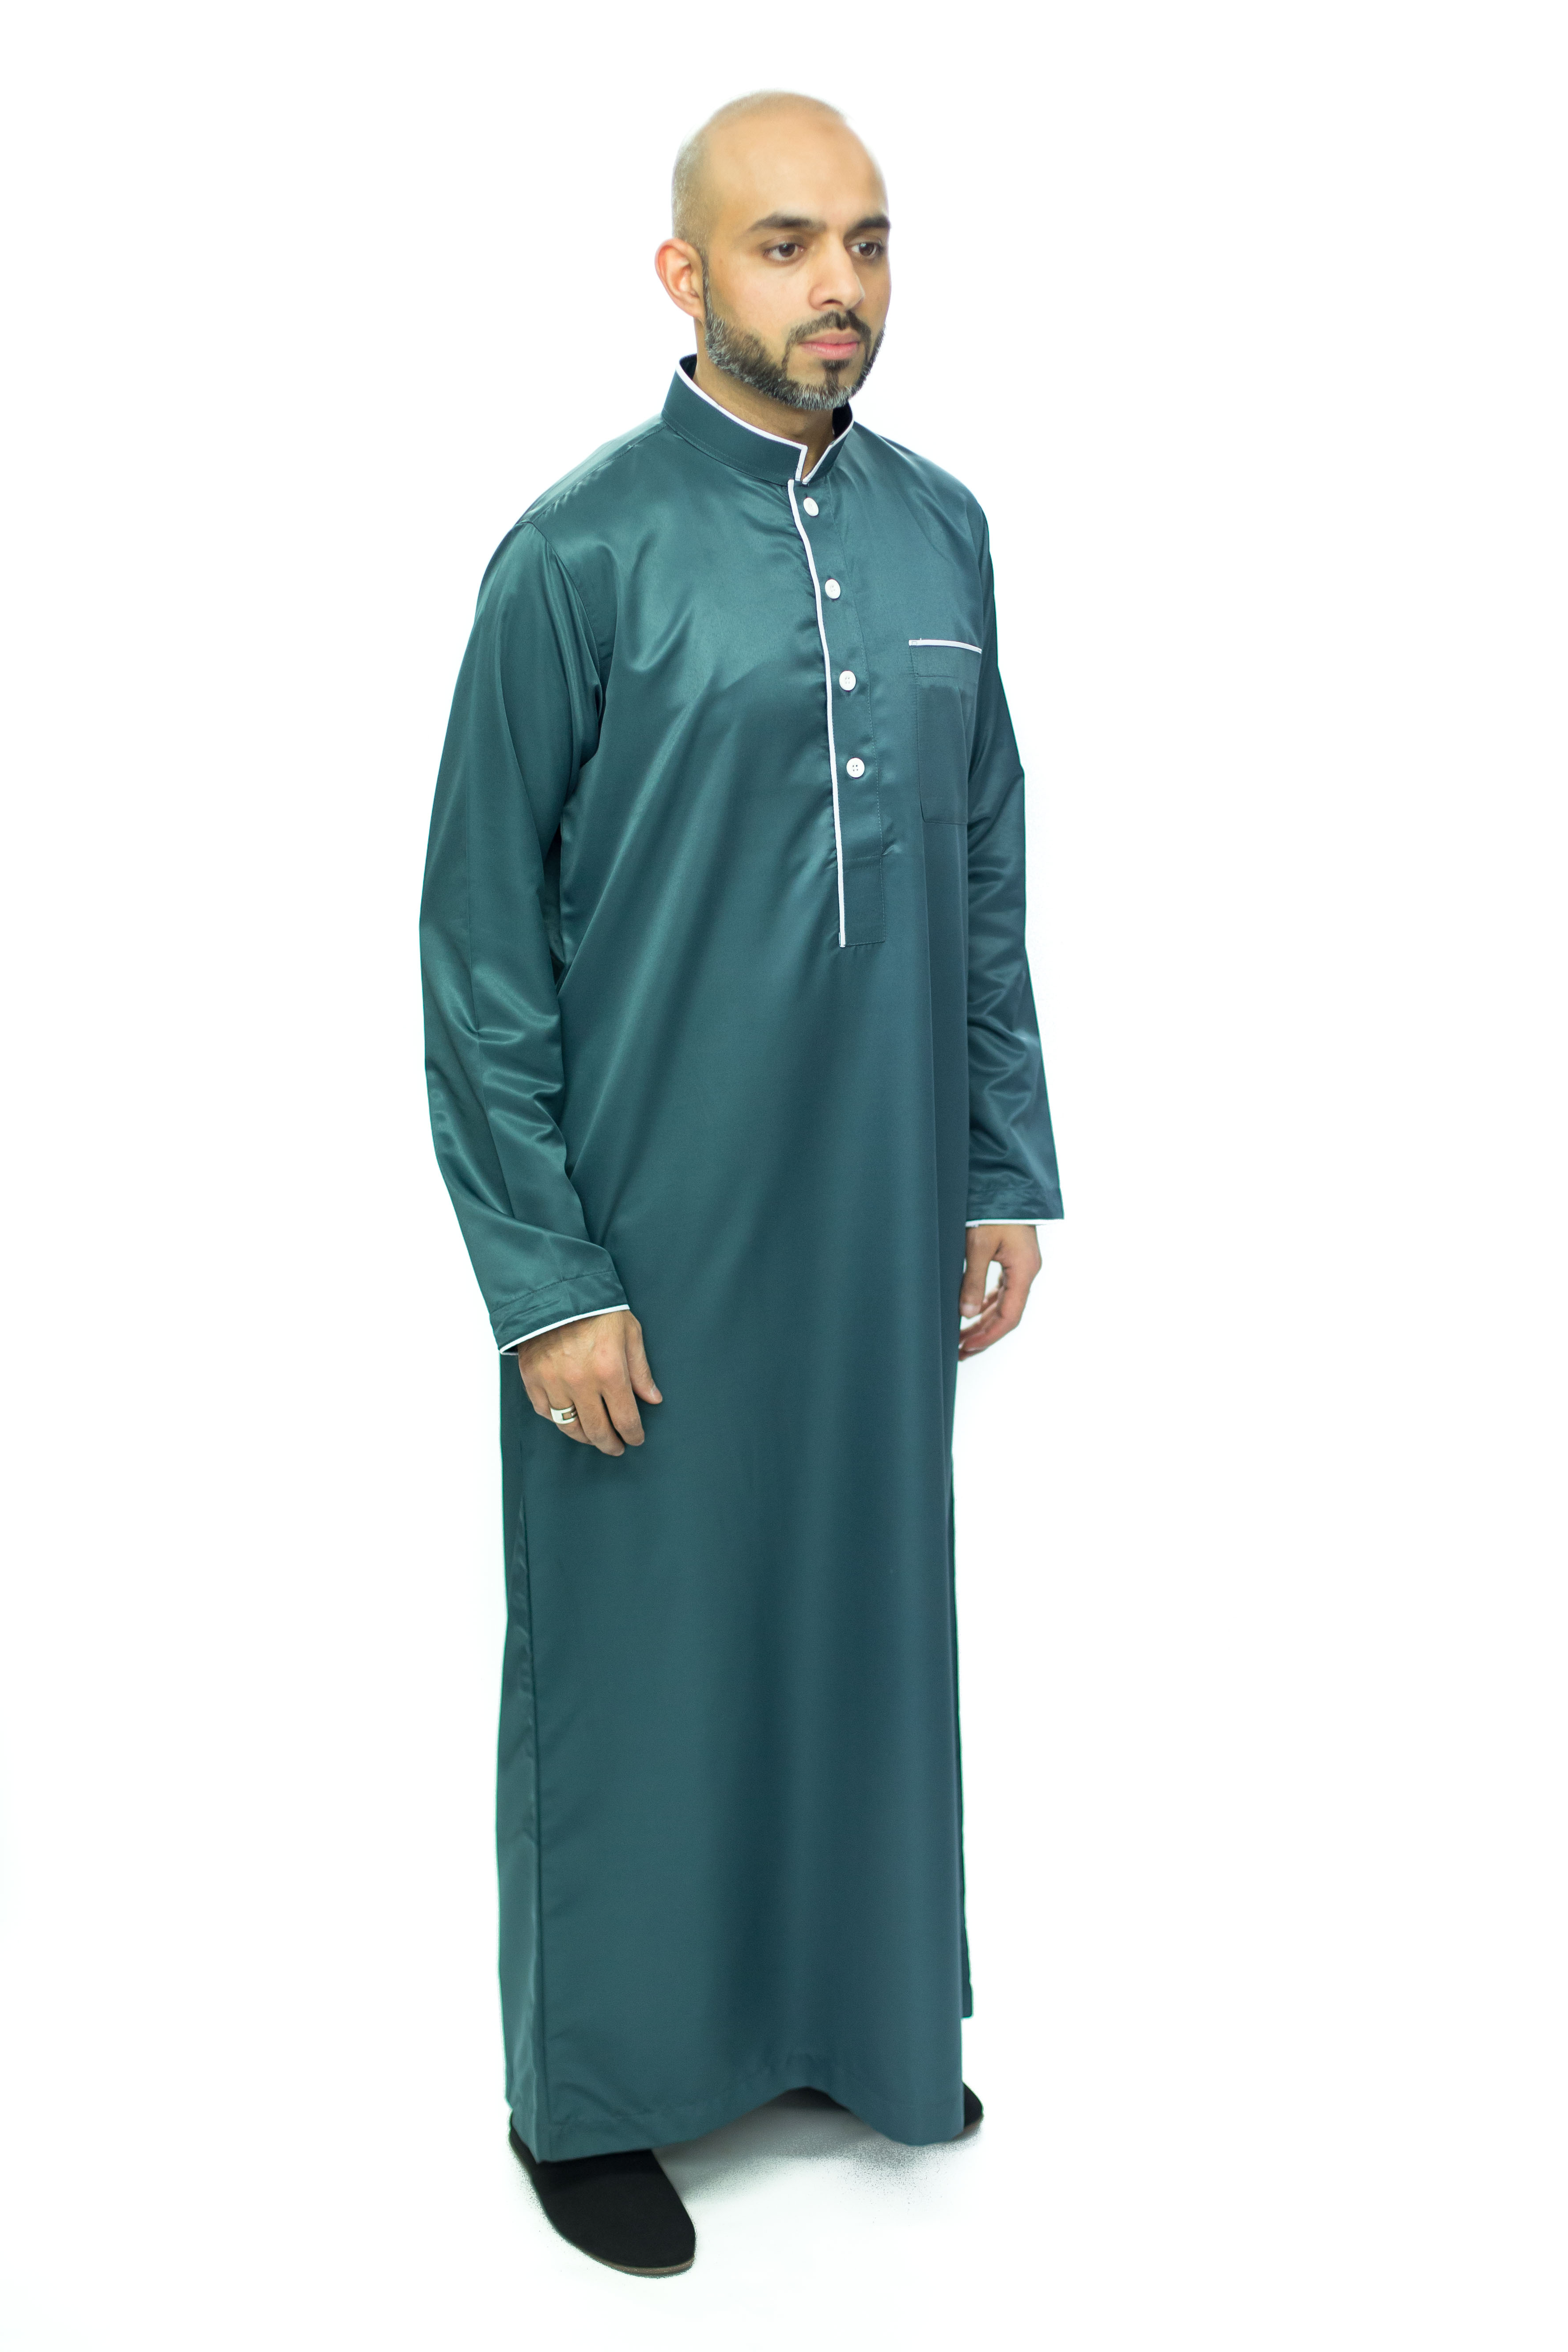 Ocean Blue New Mens Pipping Jubba